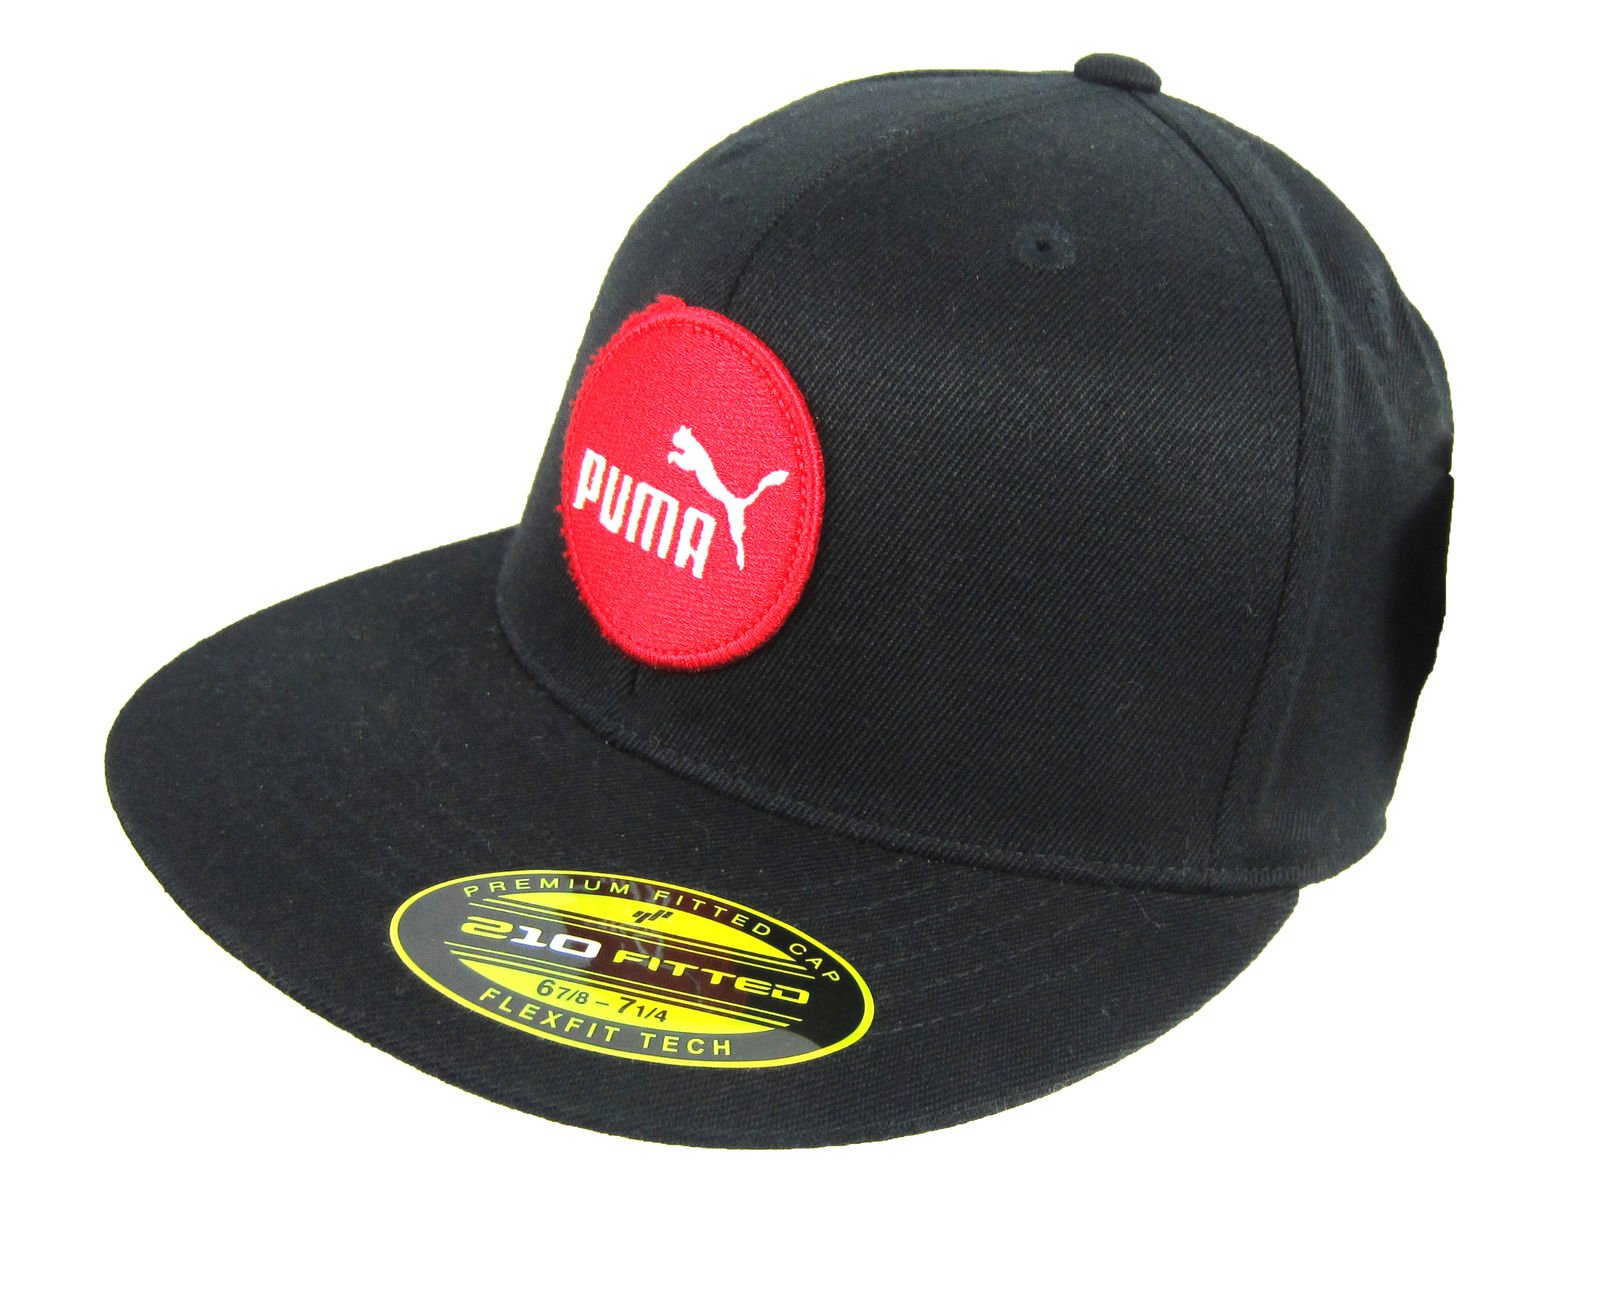 29bf9929edd08f Details about Puma Premium Fitted Cap Hat Flexfit Tech Black 6 7/8-7 1/4 or  7 1/4-7 5/8 NWT